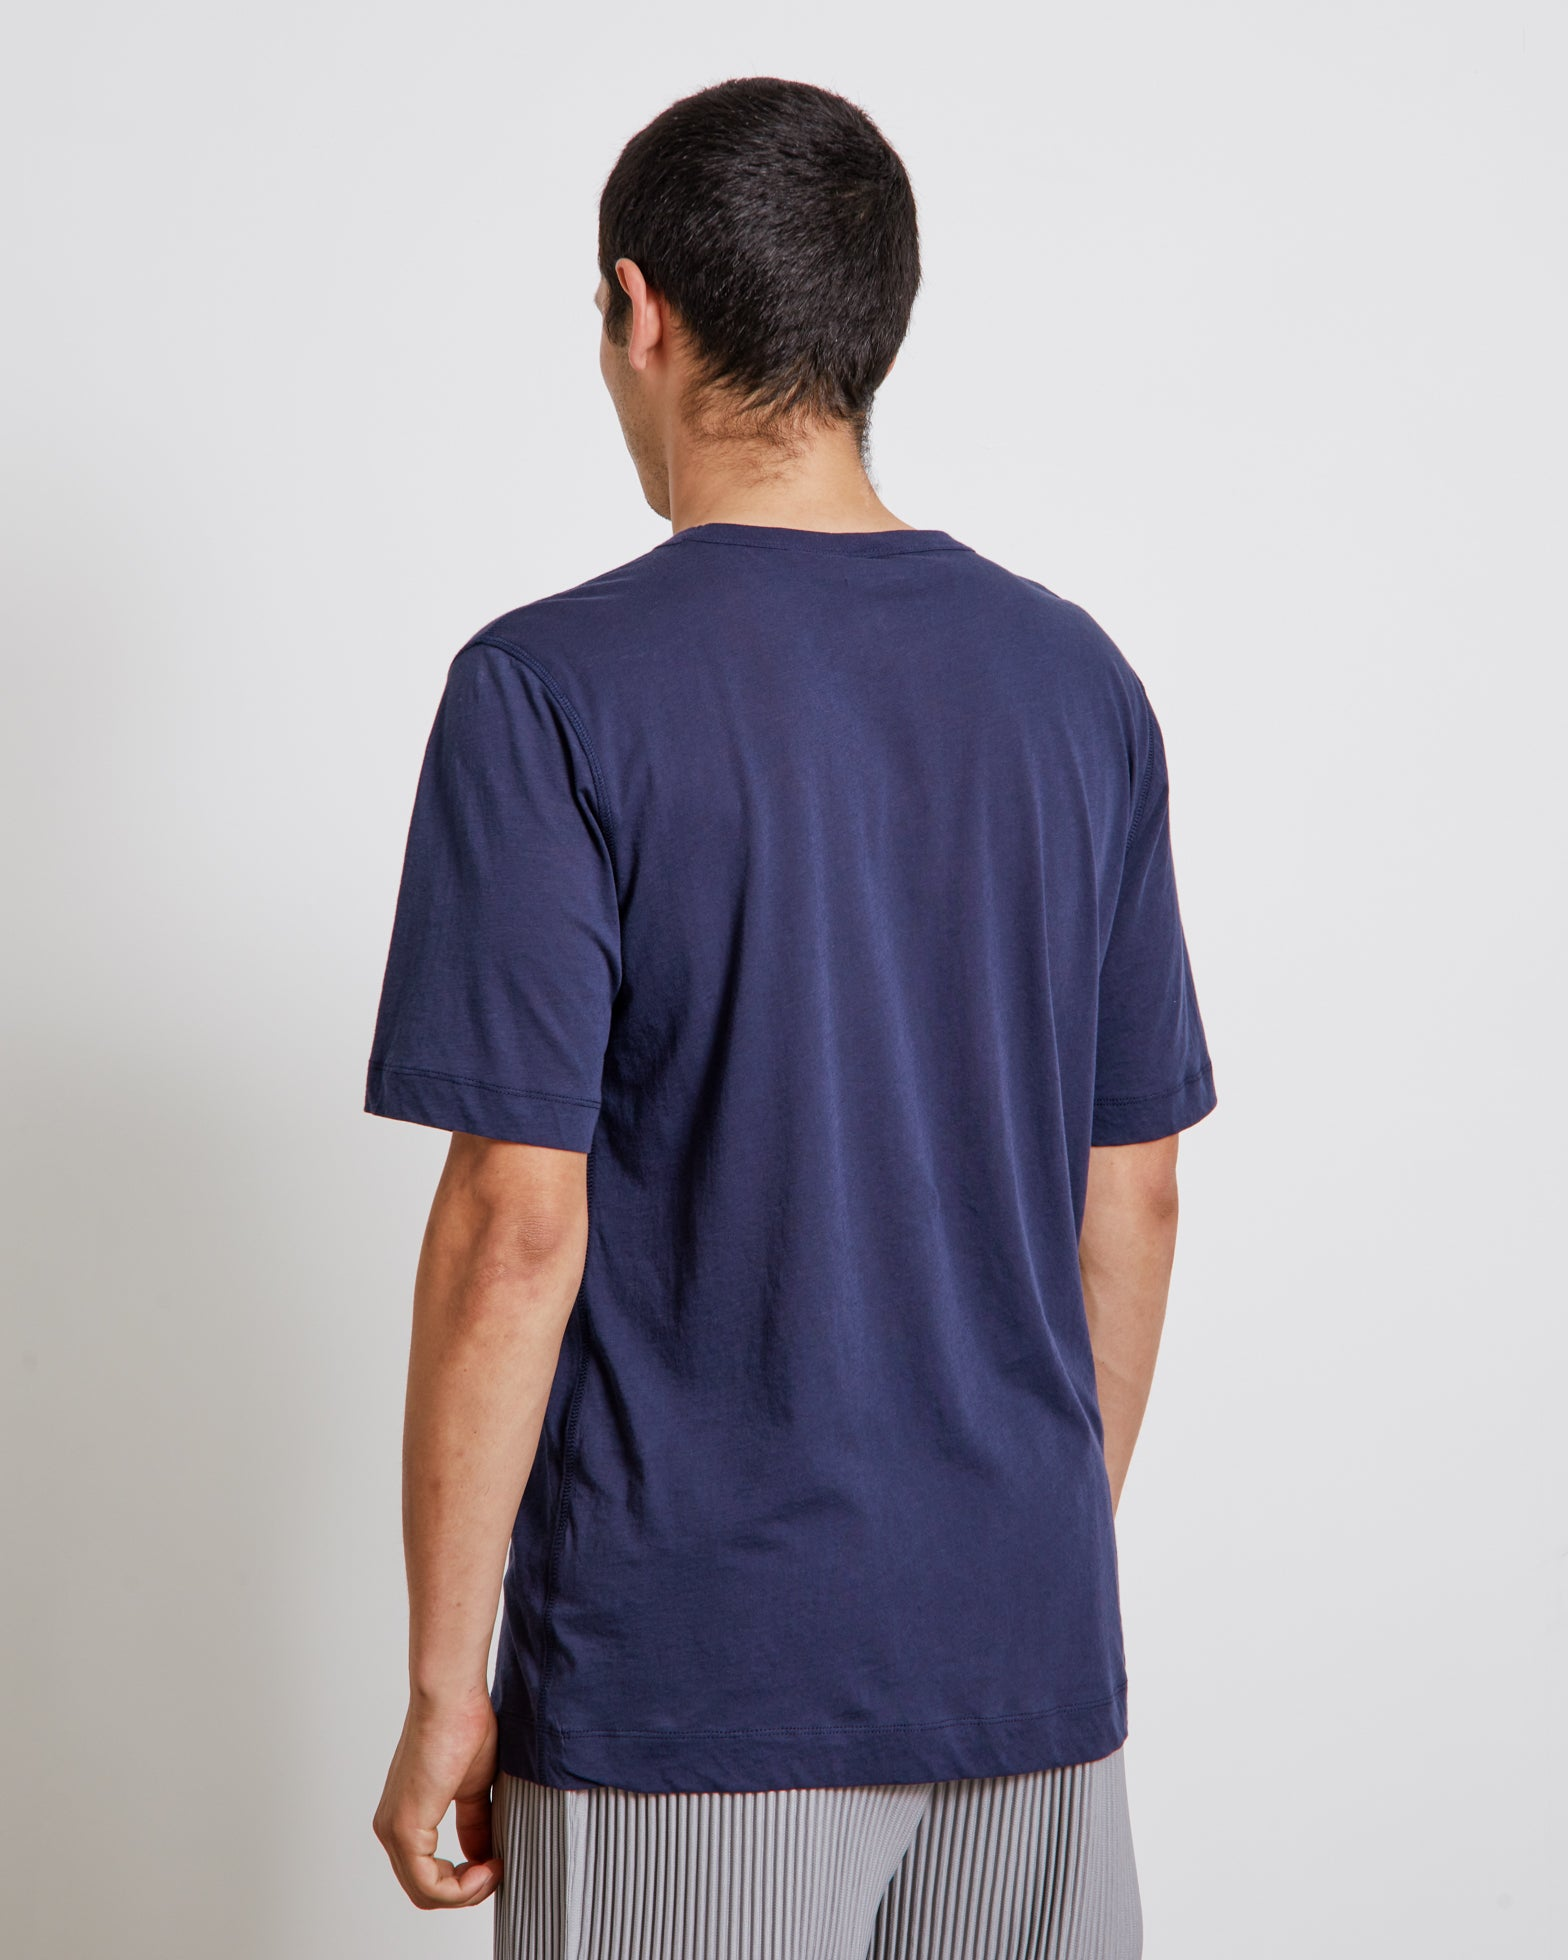 Habba 2607 M.K. T-Shirt in Blue